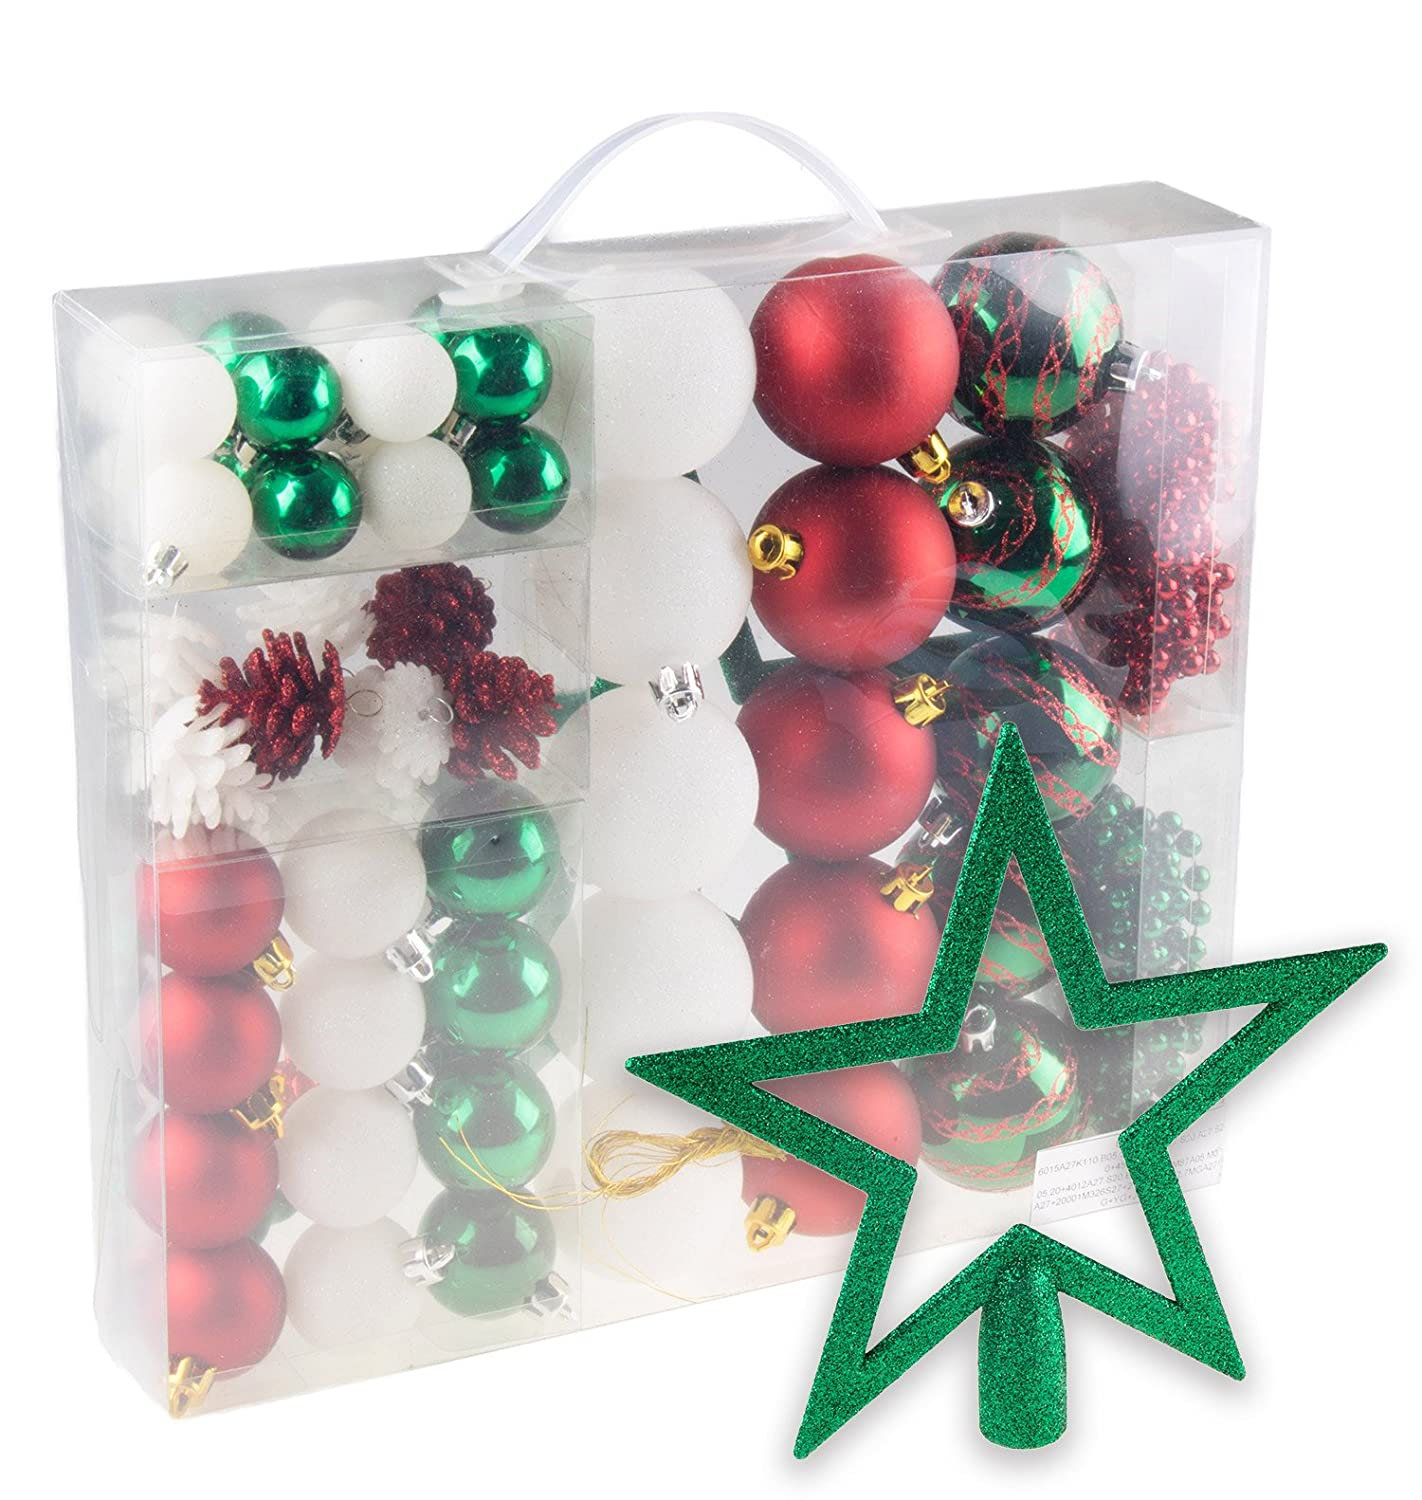 Amazon 54 Piece Red White and Green Christmas Ornament Set by